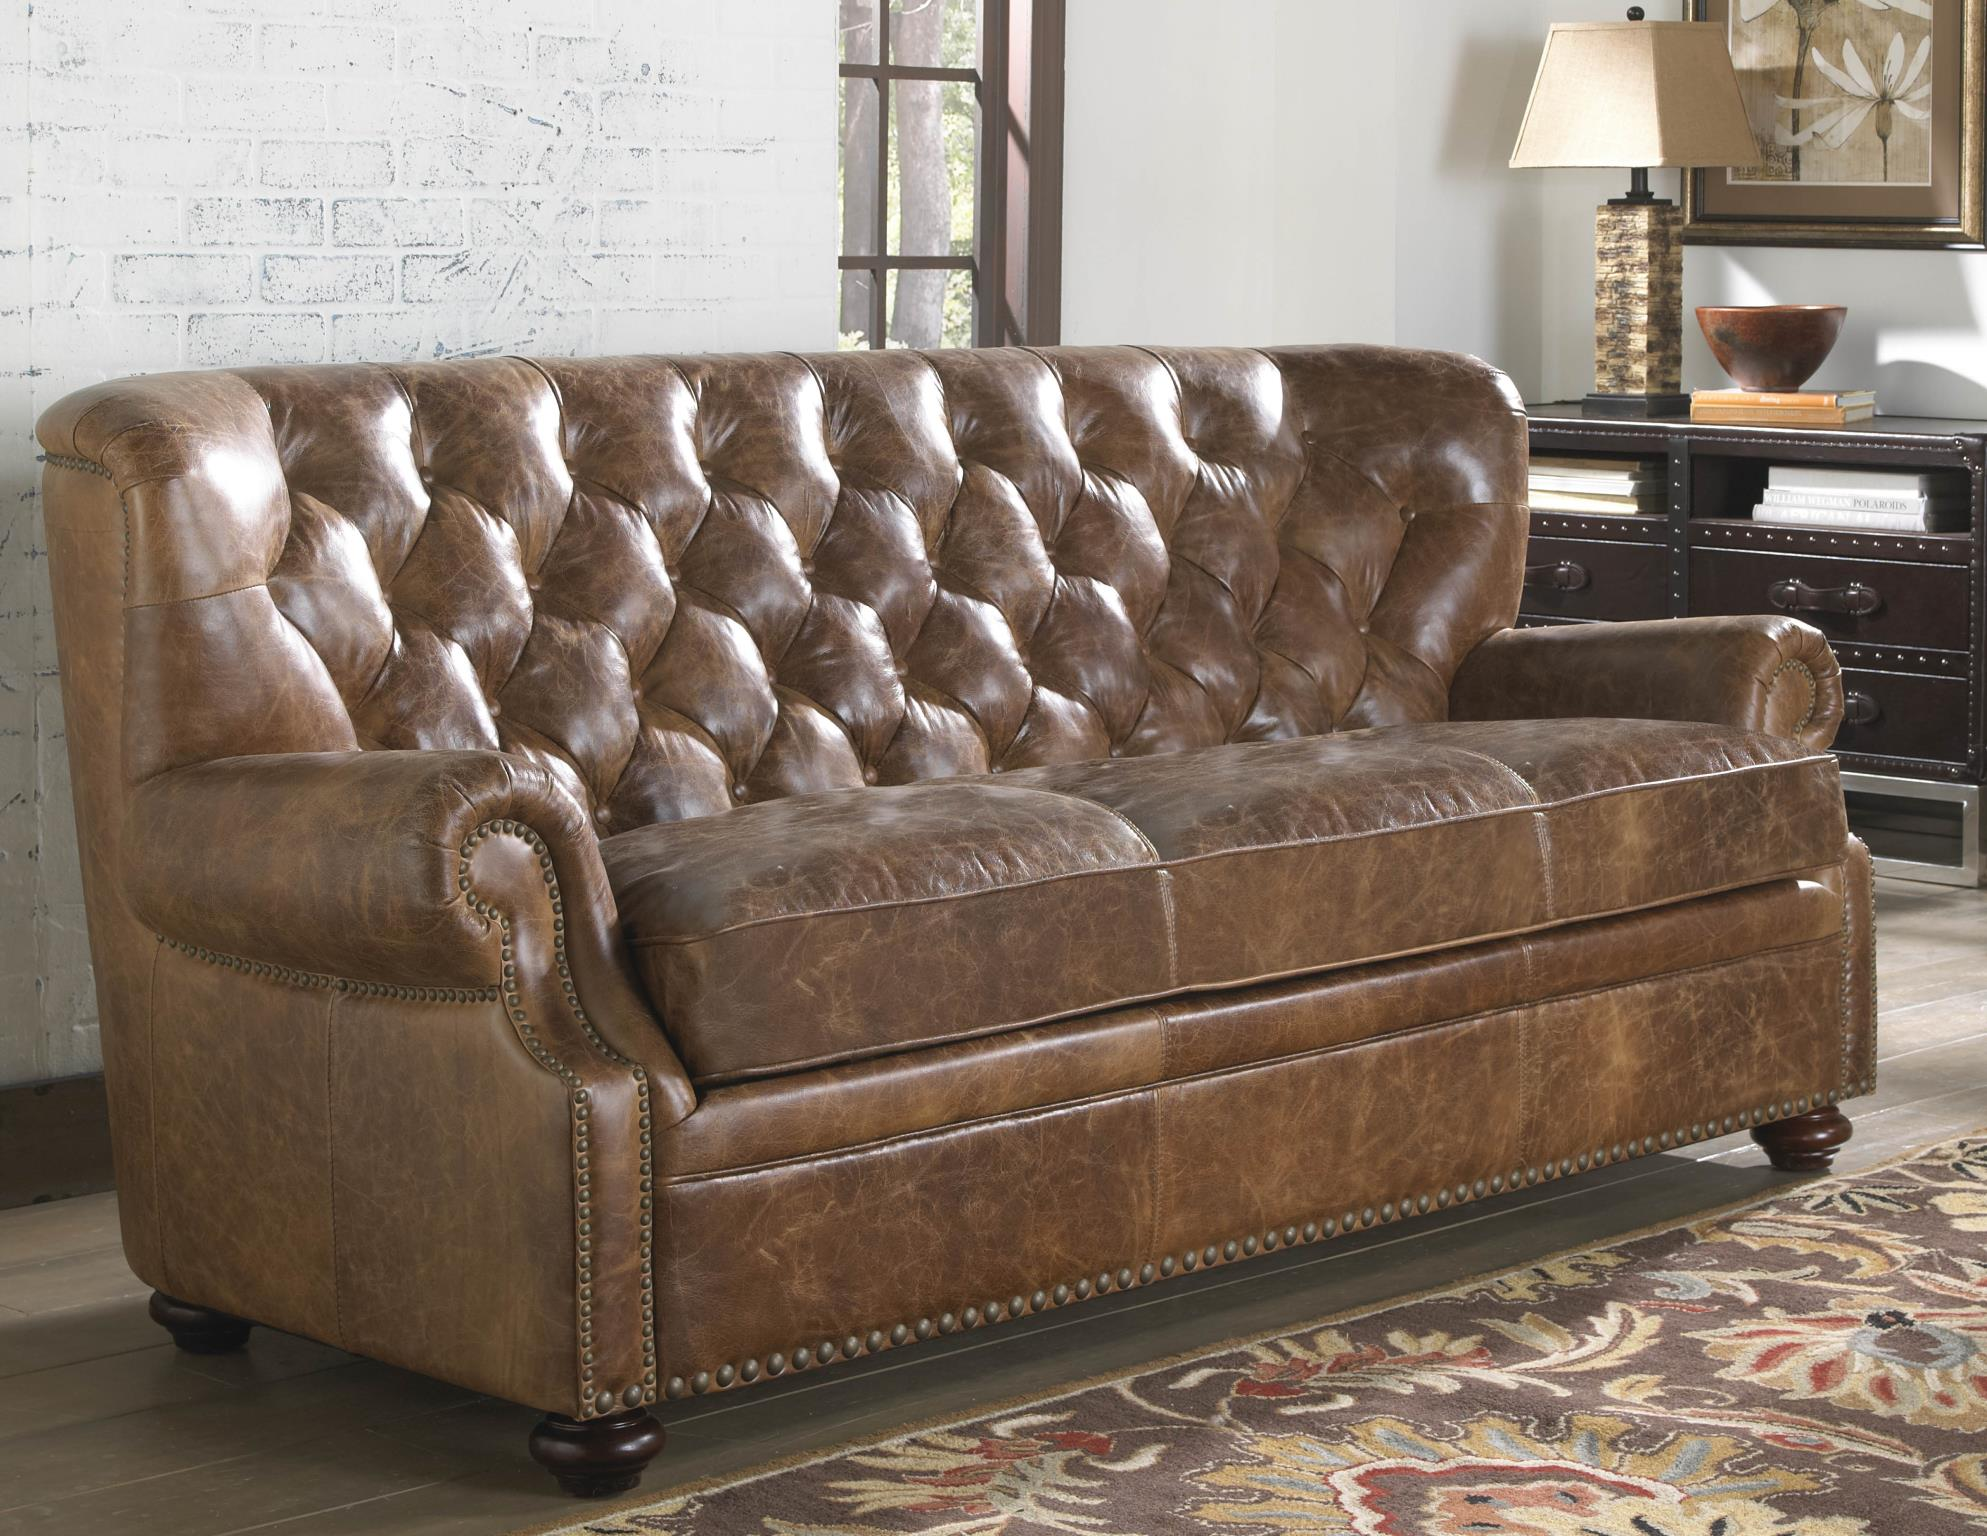 Peachy Louis 1435 Leather Sofa In Cocoa Brompton In Sofas And Ncnpc Chair Design For Home Ncnpcorg